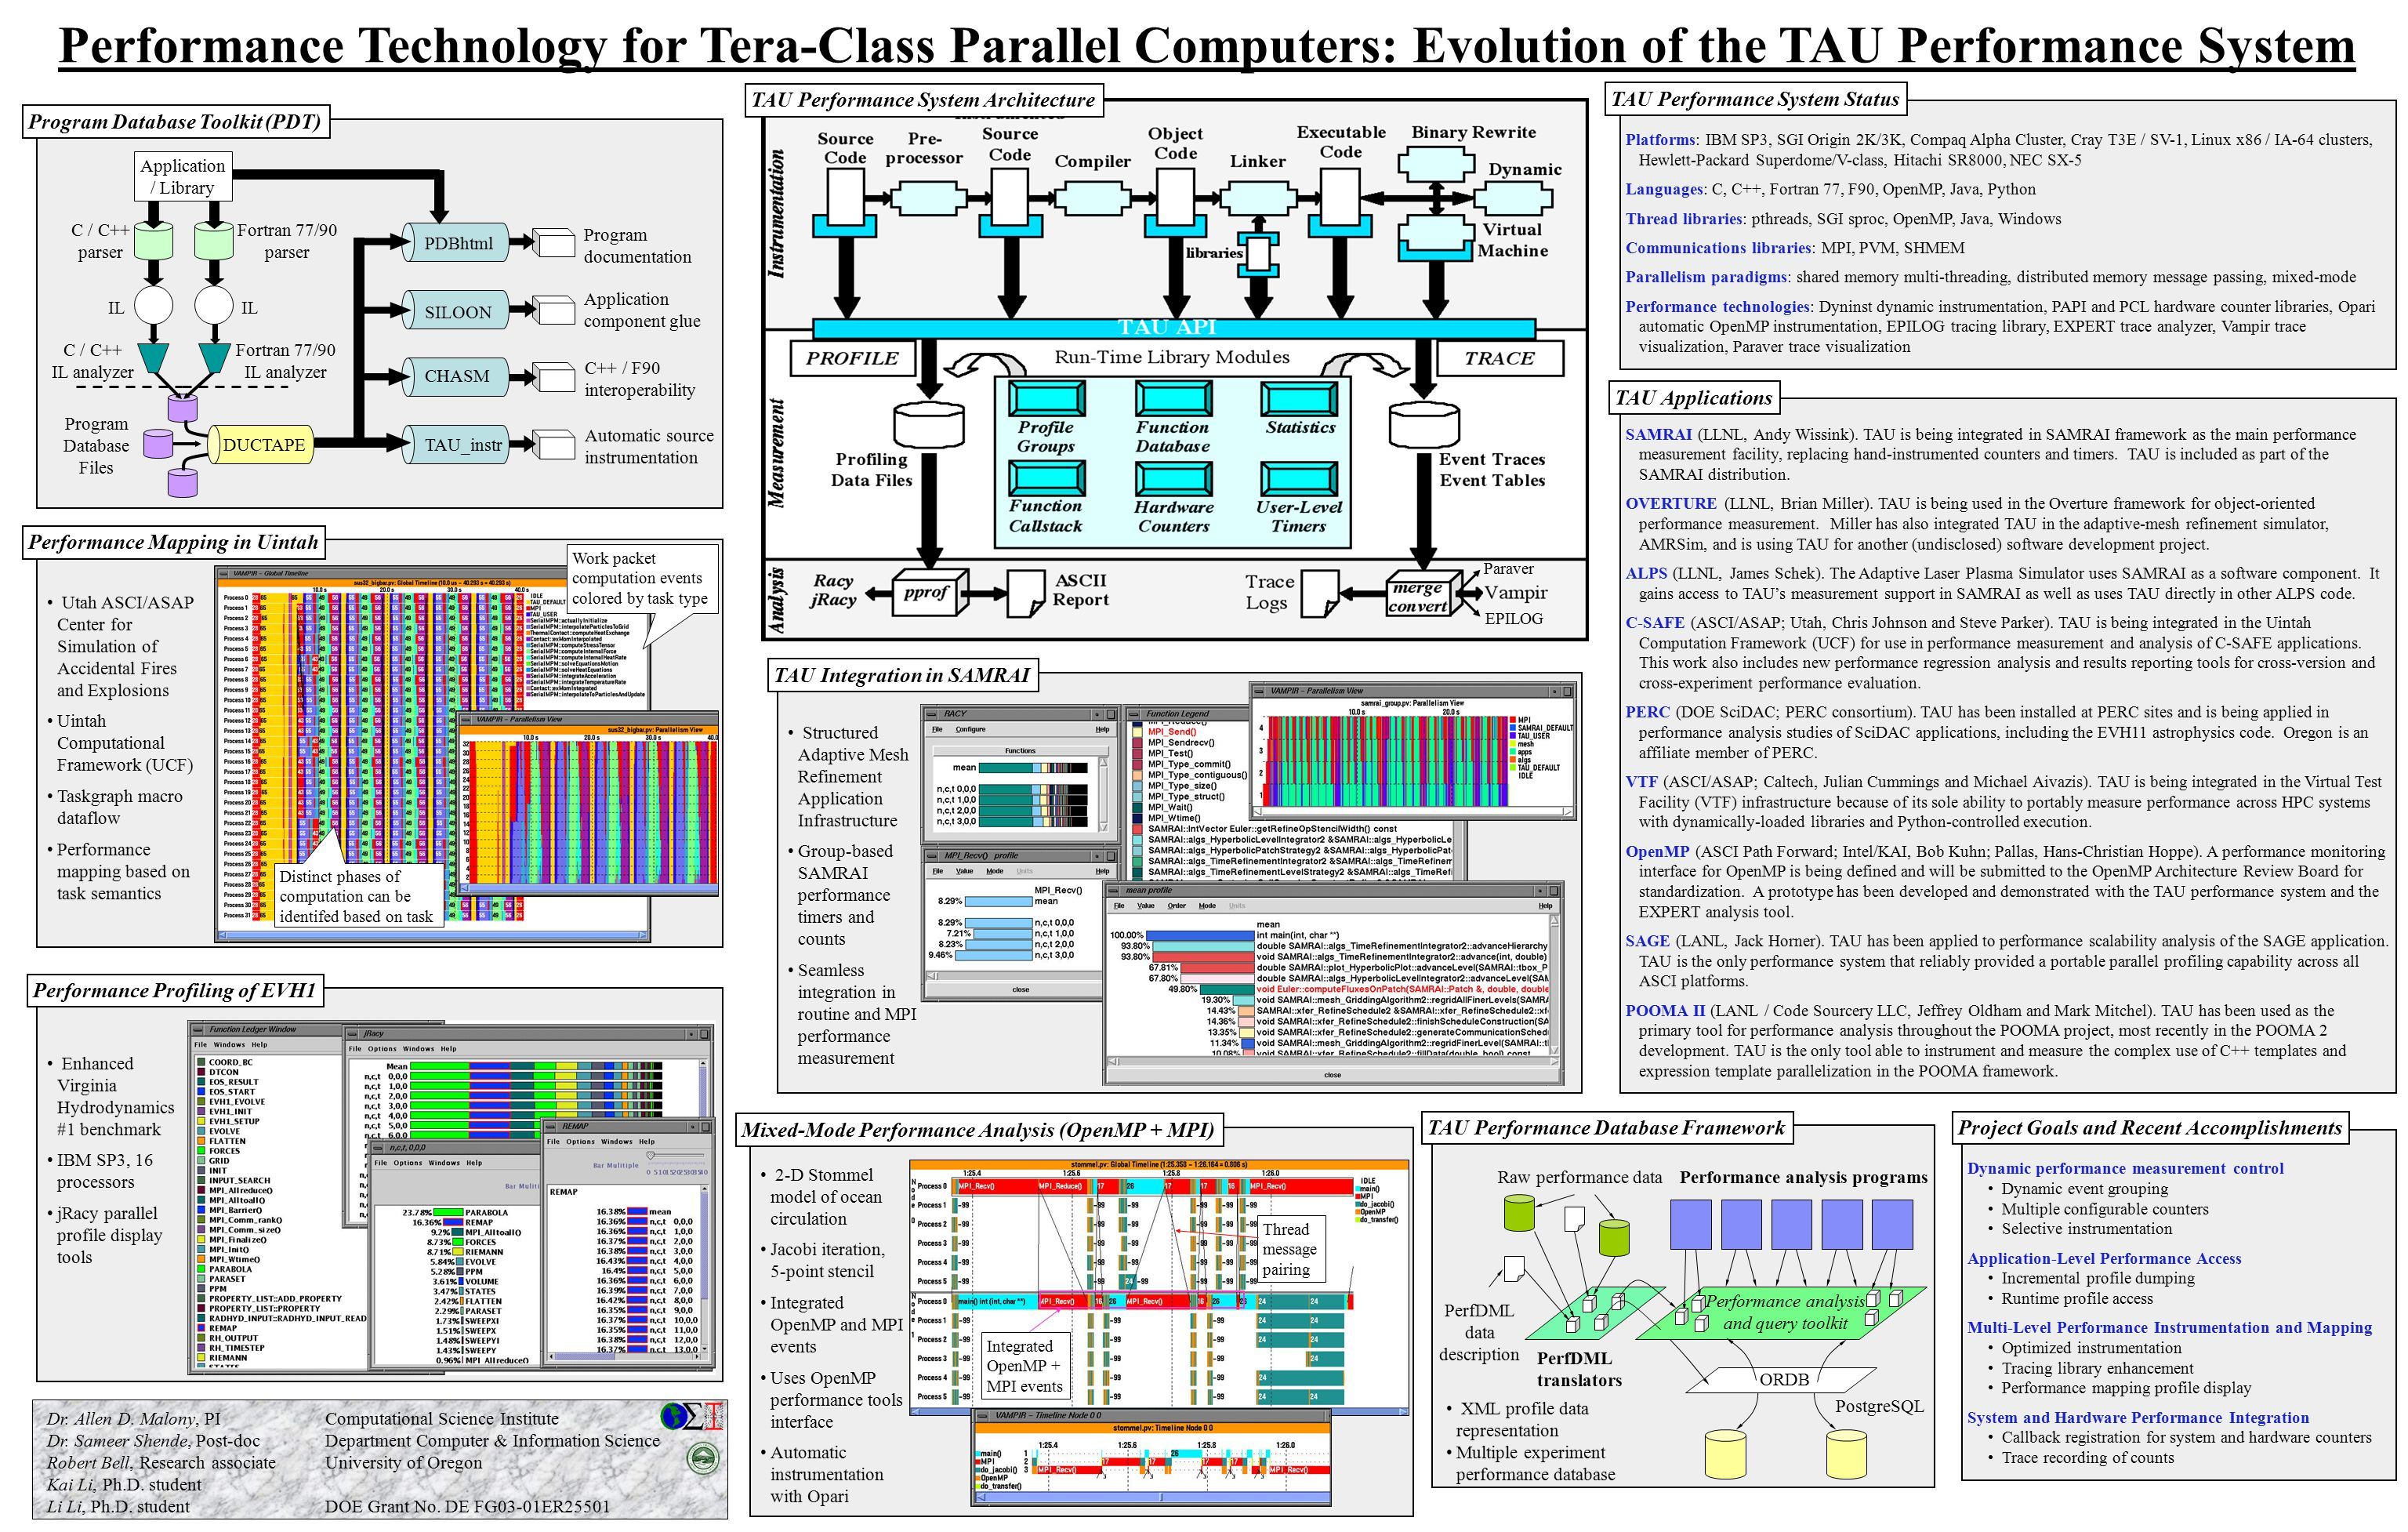 Performance Technology for Tera-Class Parallel Computers: Evolution of the TAU Performance System...